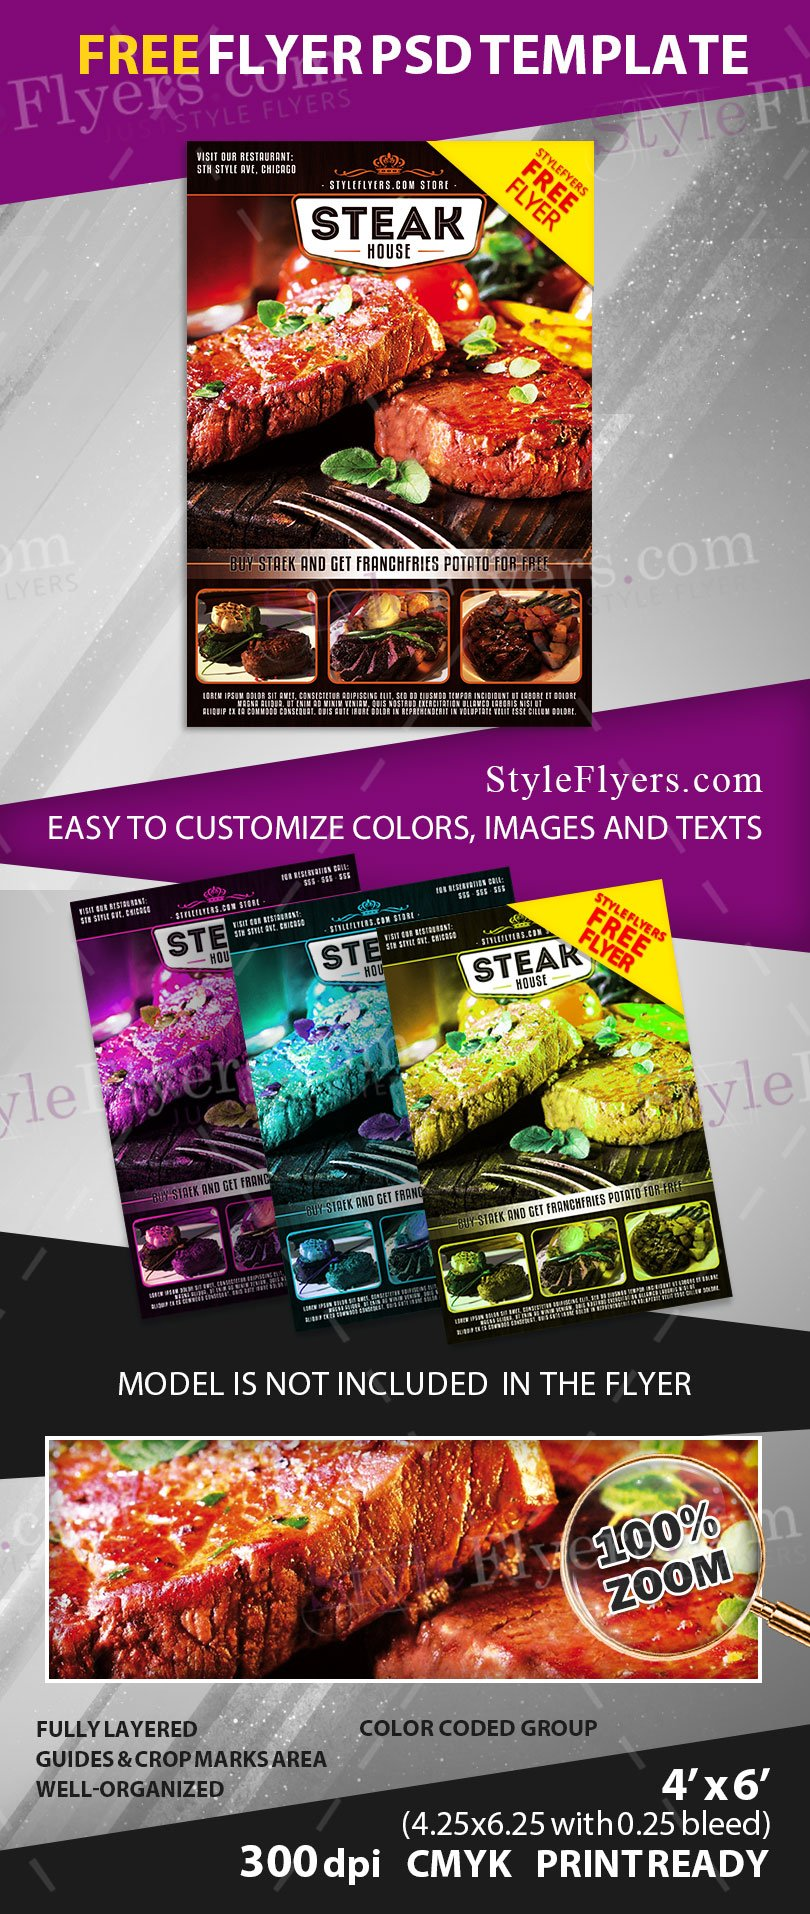 Steak House Free Psd Flyer Template Free Download 11009 Styleflyers